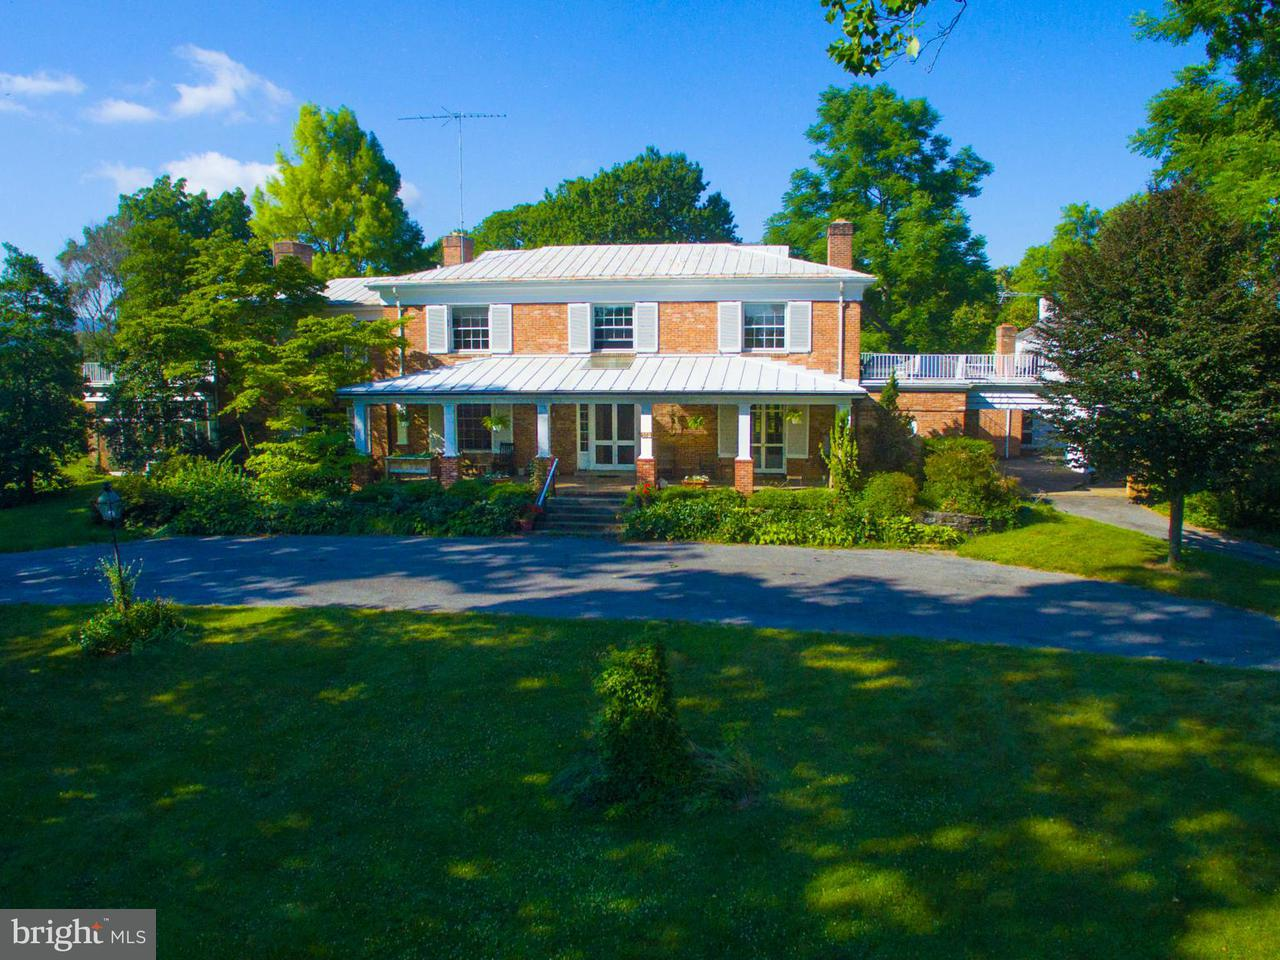 Additional photo for property listing at 466 Montana Hall Ln S 466 Montana Hall Ln S White Post, Virginia 22663 Estados Unidos